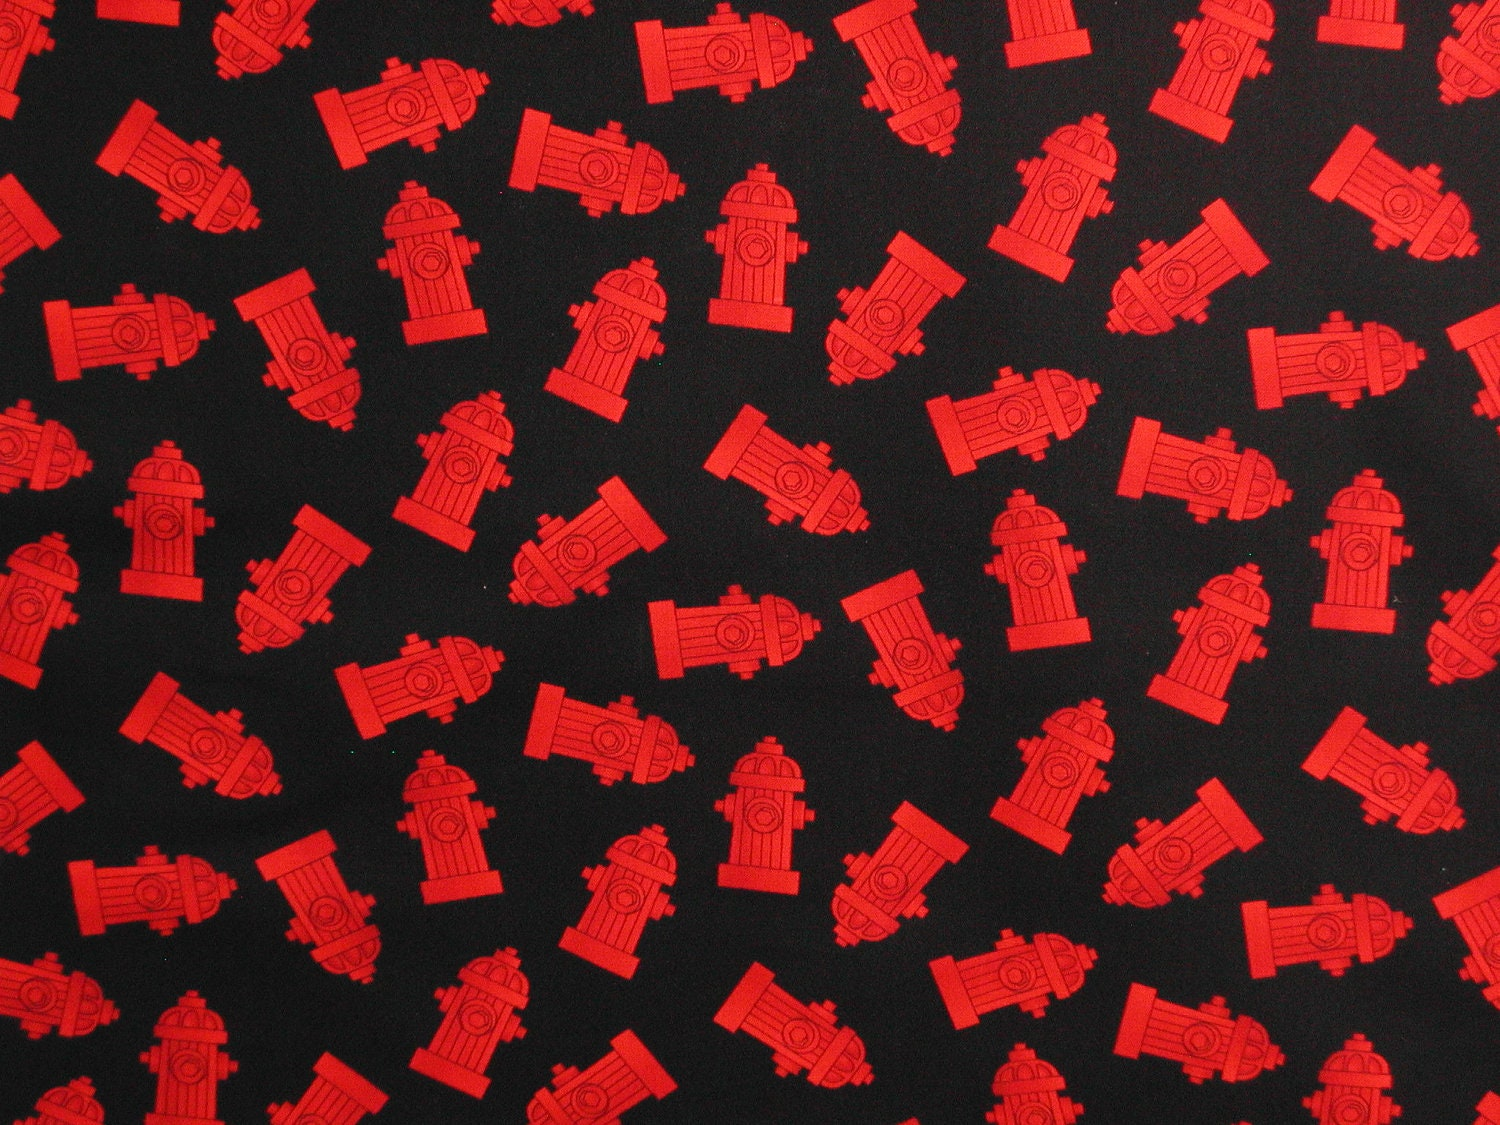 Fire Hydrant Fabric-Fireman Quilts-Table by ginnyandco on Etsy